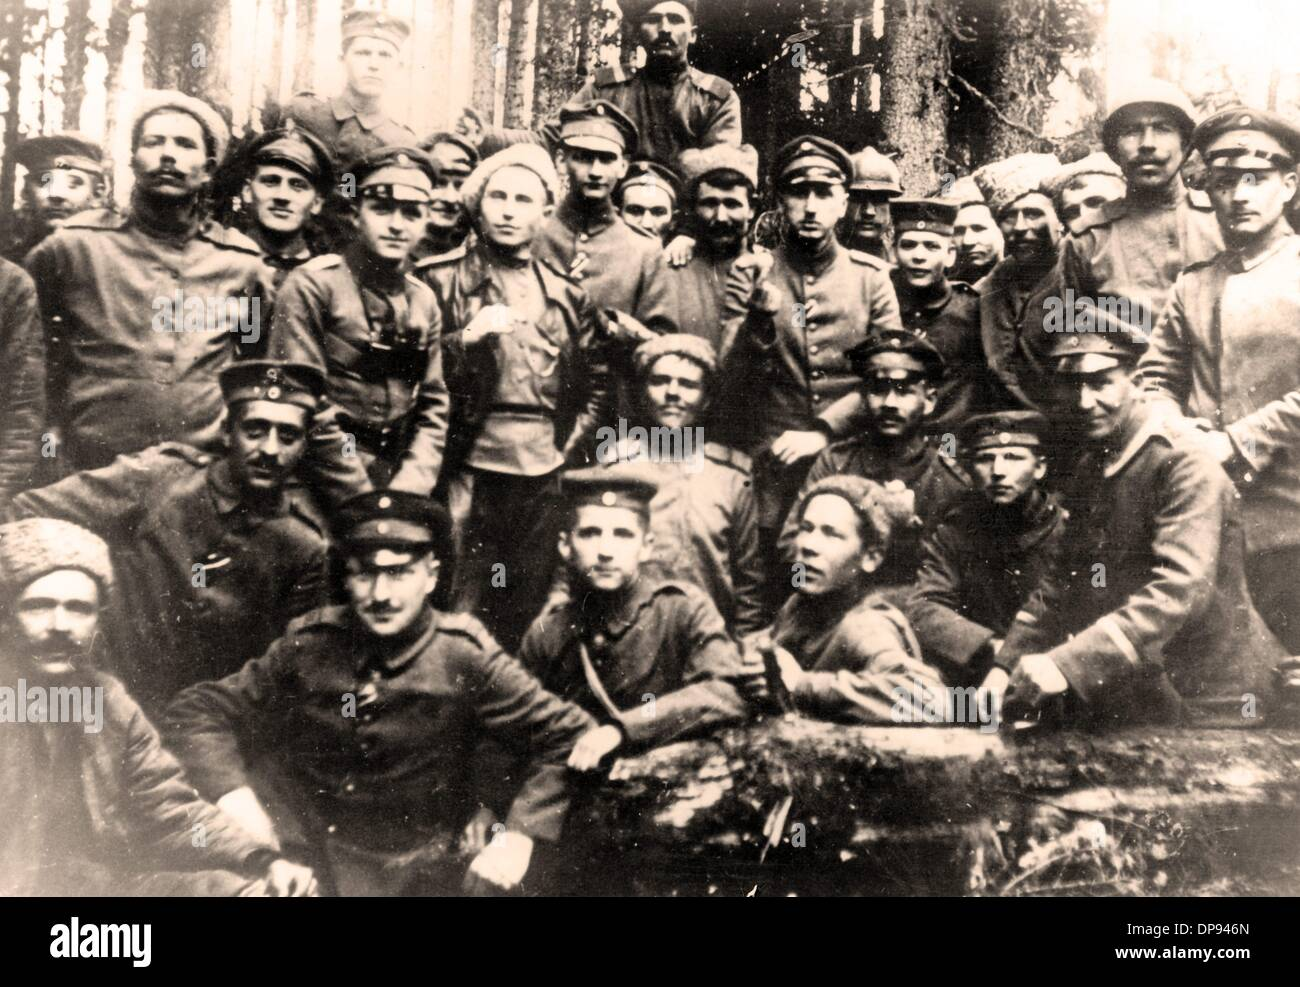 View of German and Russian soldiers after the ceasefire agreement of the Eastern Front was signed on 15 December 1917. The peace negotiations ended with the peace treaty of Brest-Litovsk from 3 March 1918 with the Soviet Russia withdrawing from the war. Photo: Berliner Verlag/Archiv - Stock Image